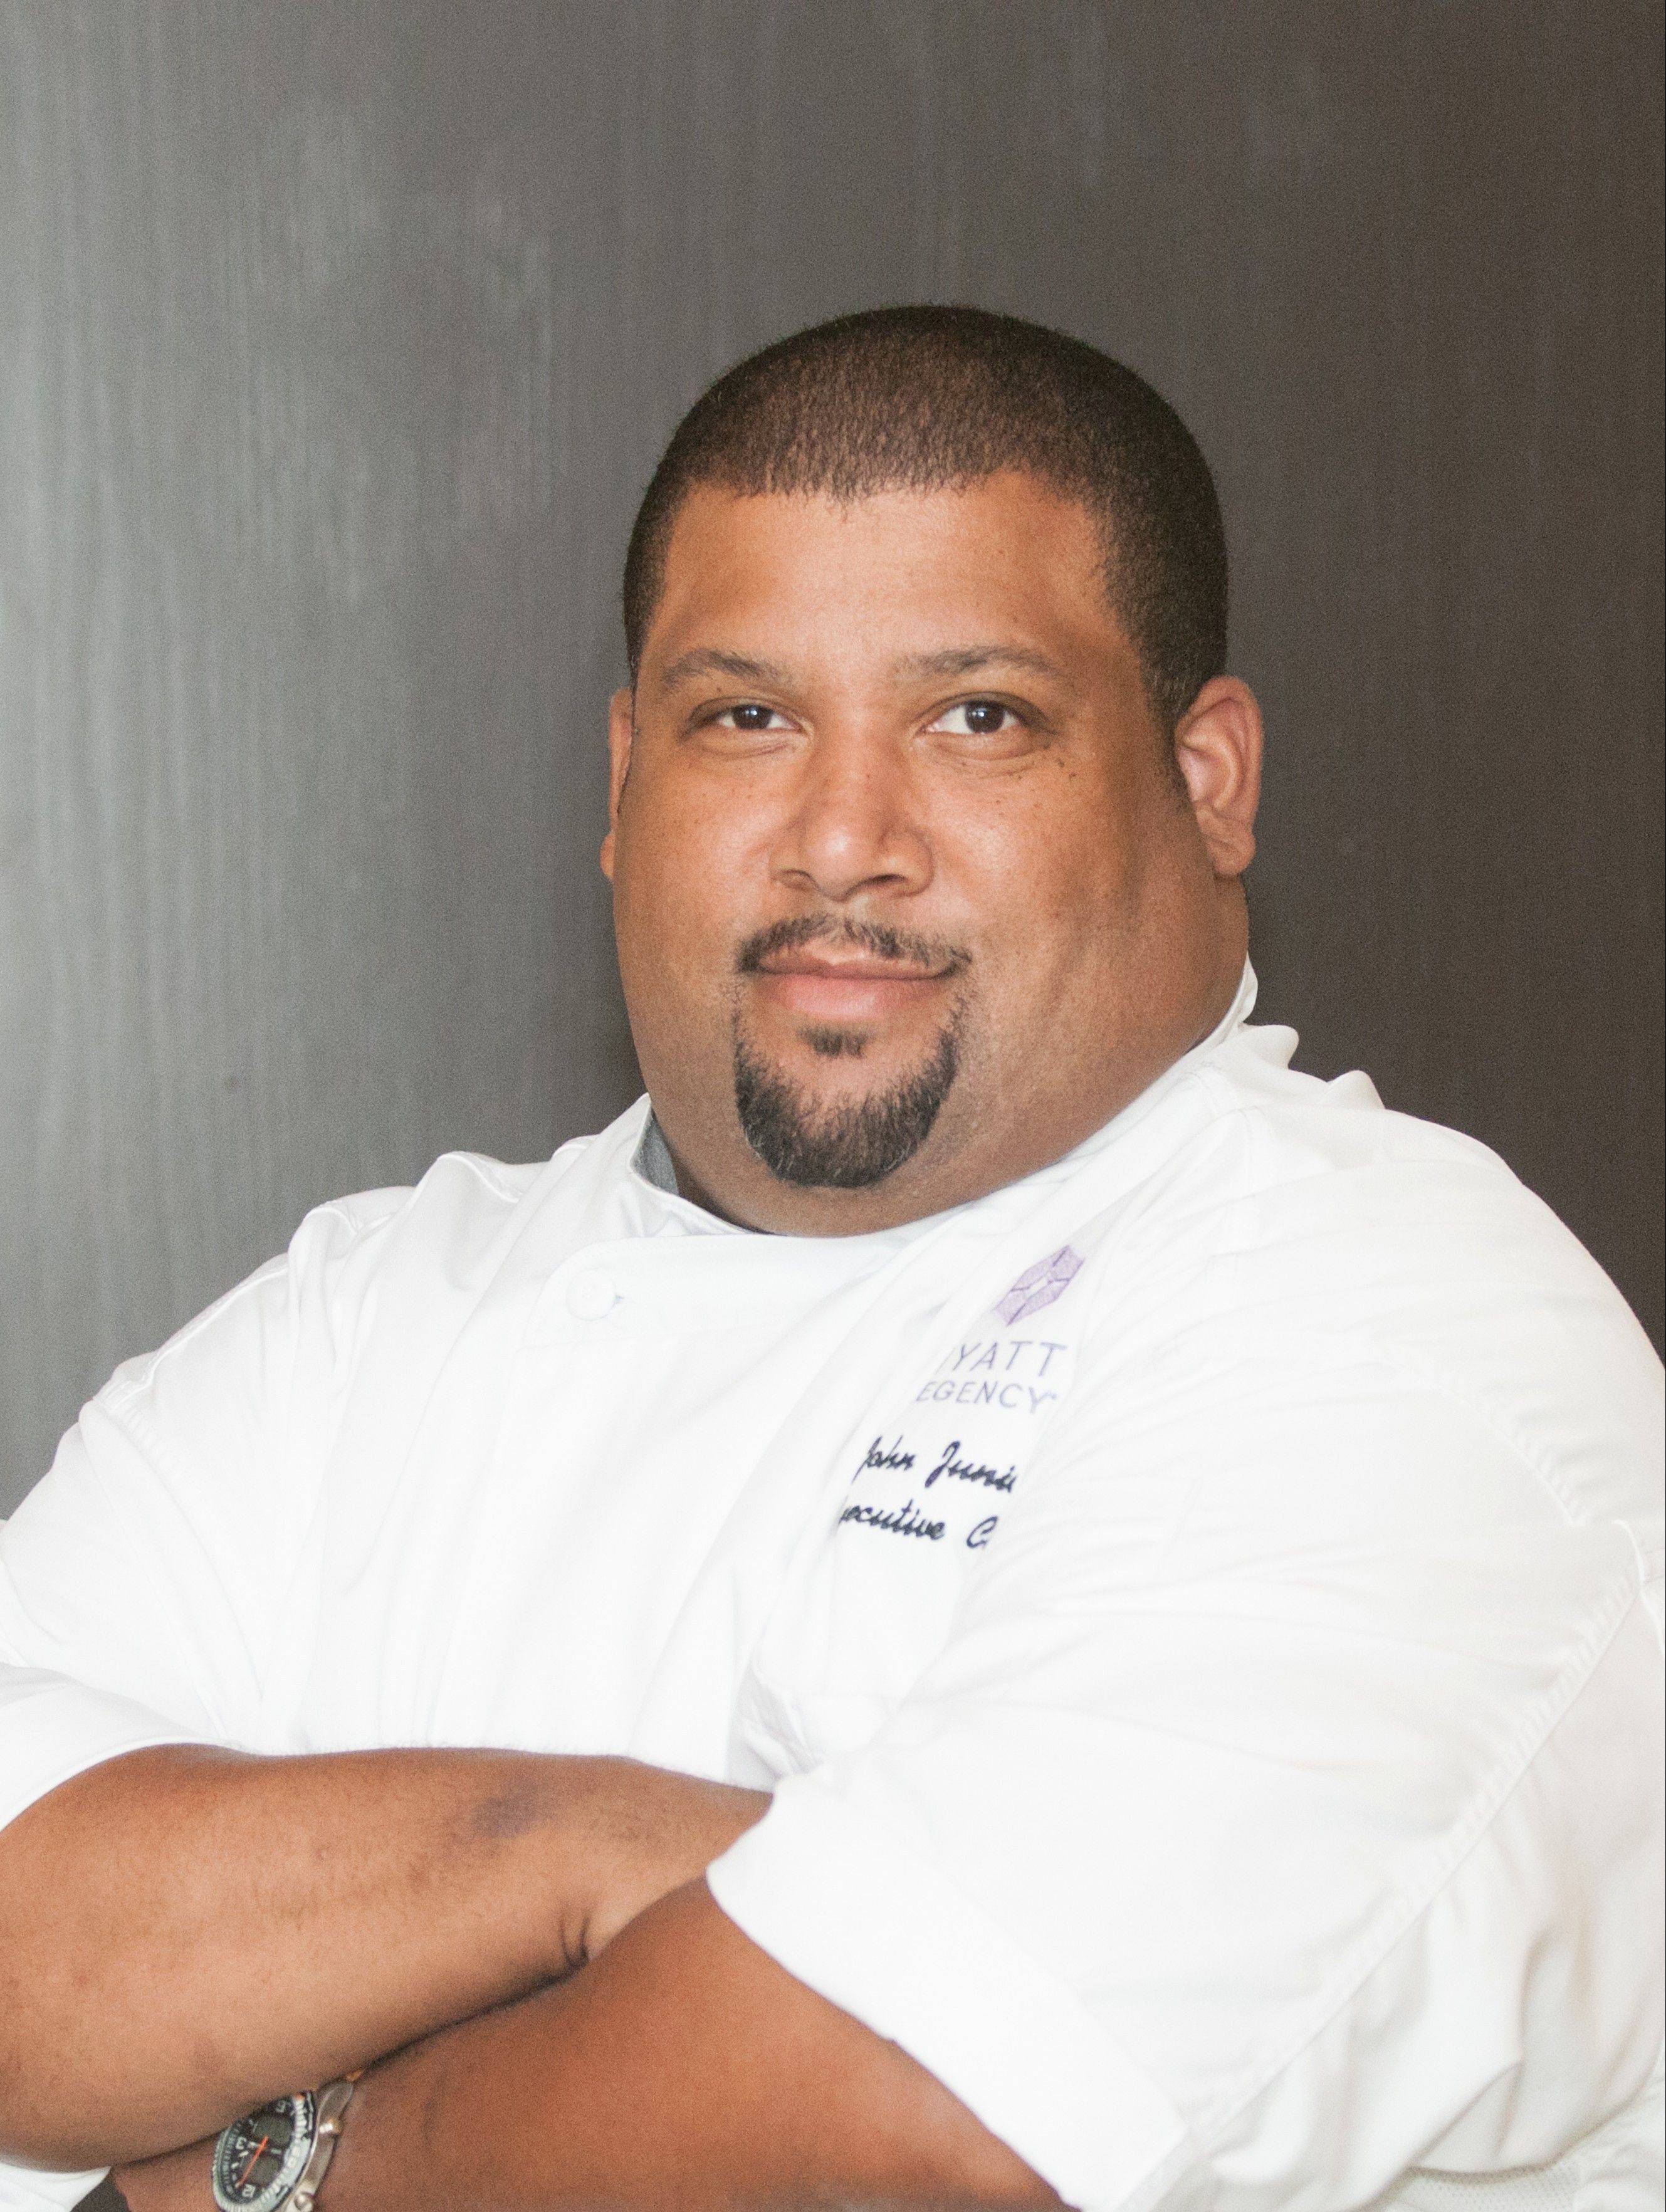 John Junior, executive chef at the Hyatt Regency Schaumburg